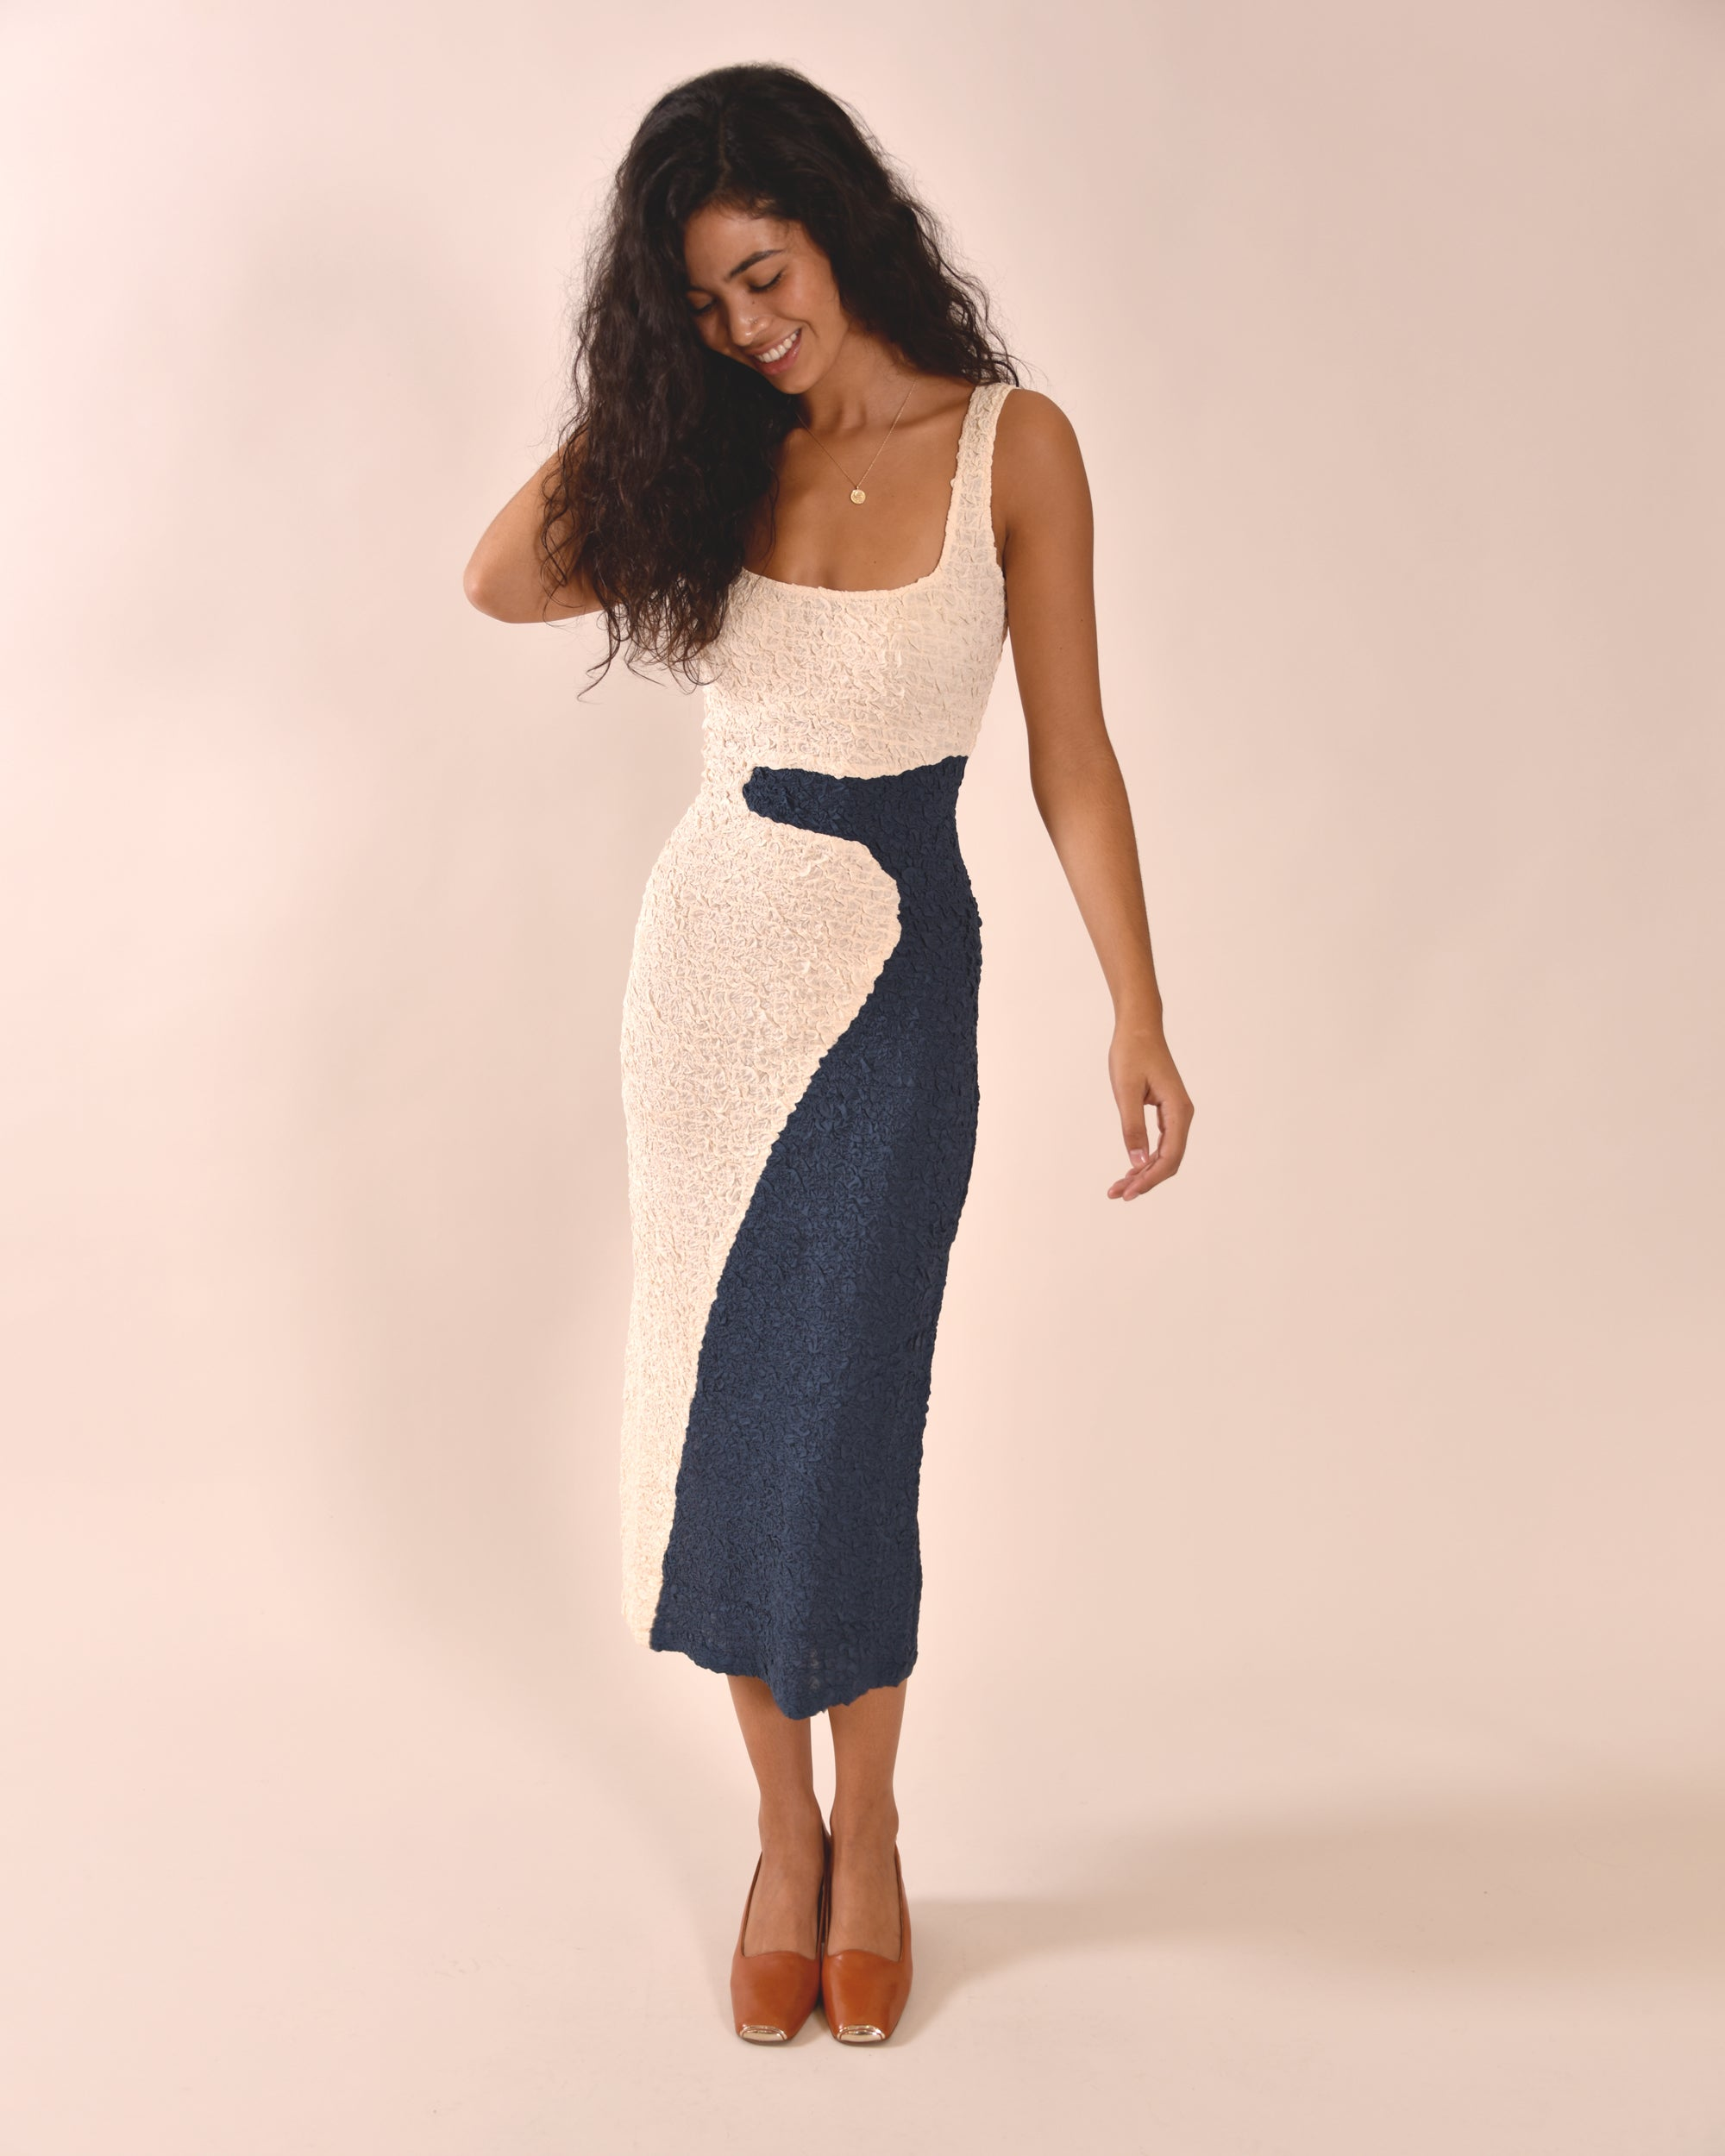 MARA HOFFMAN Sloan Dress / Cream and Navy